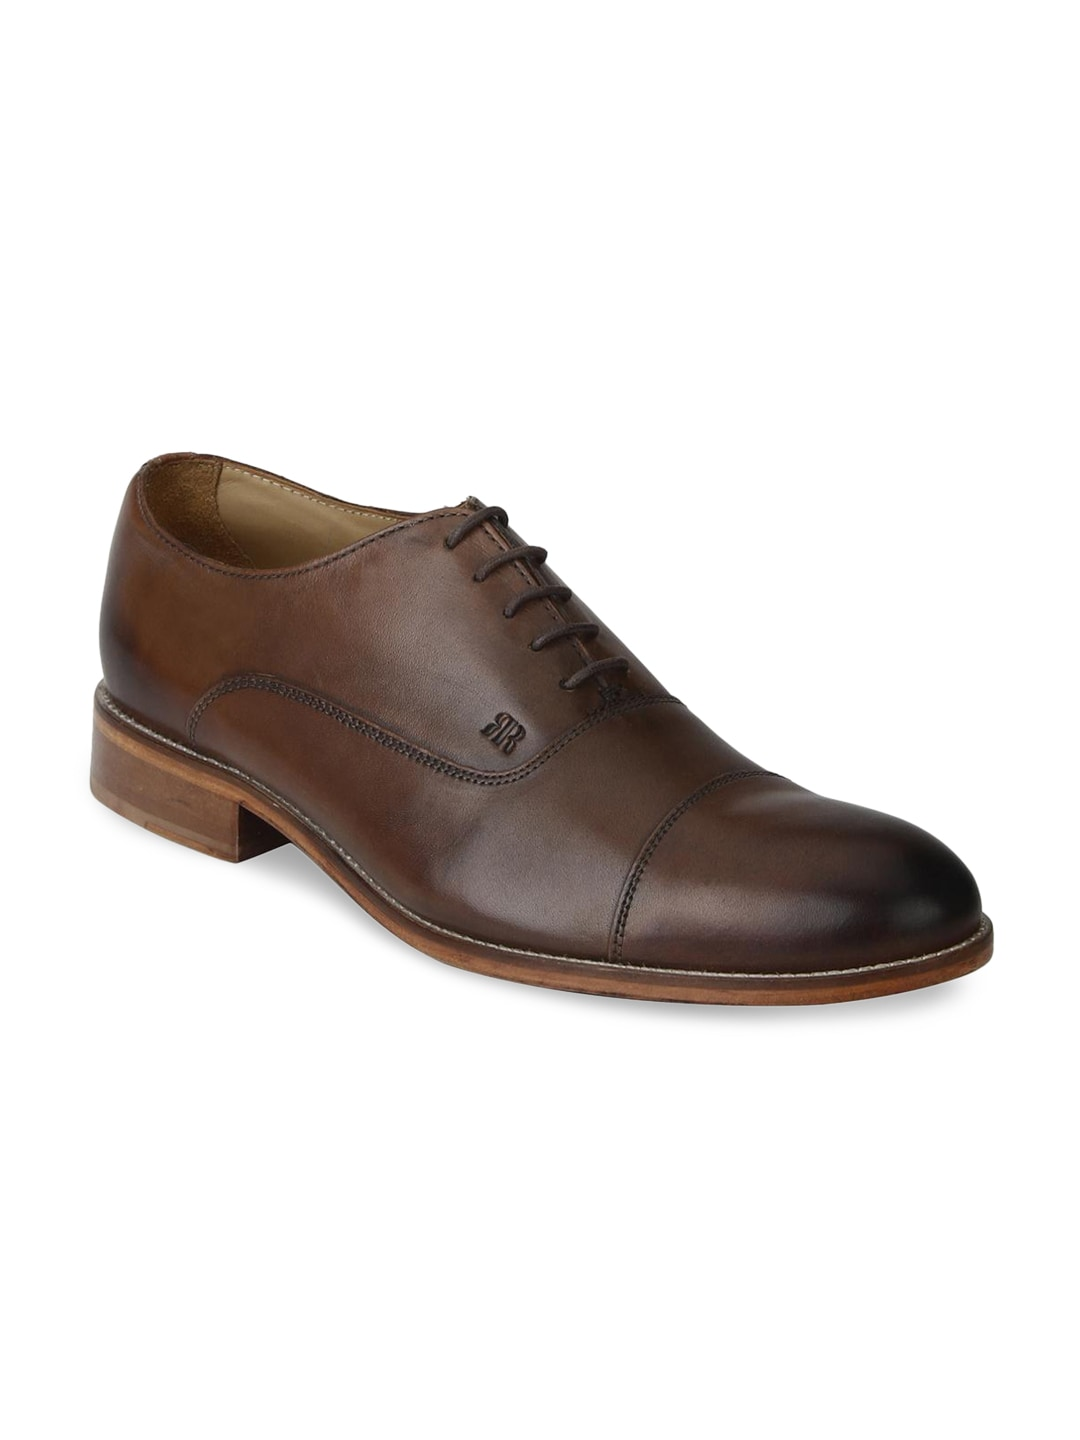 Raymond Men Brown Round-Toed Leather Formal Shoes image